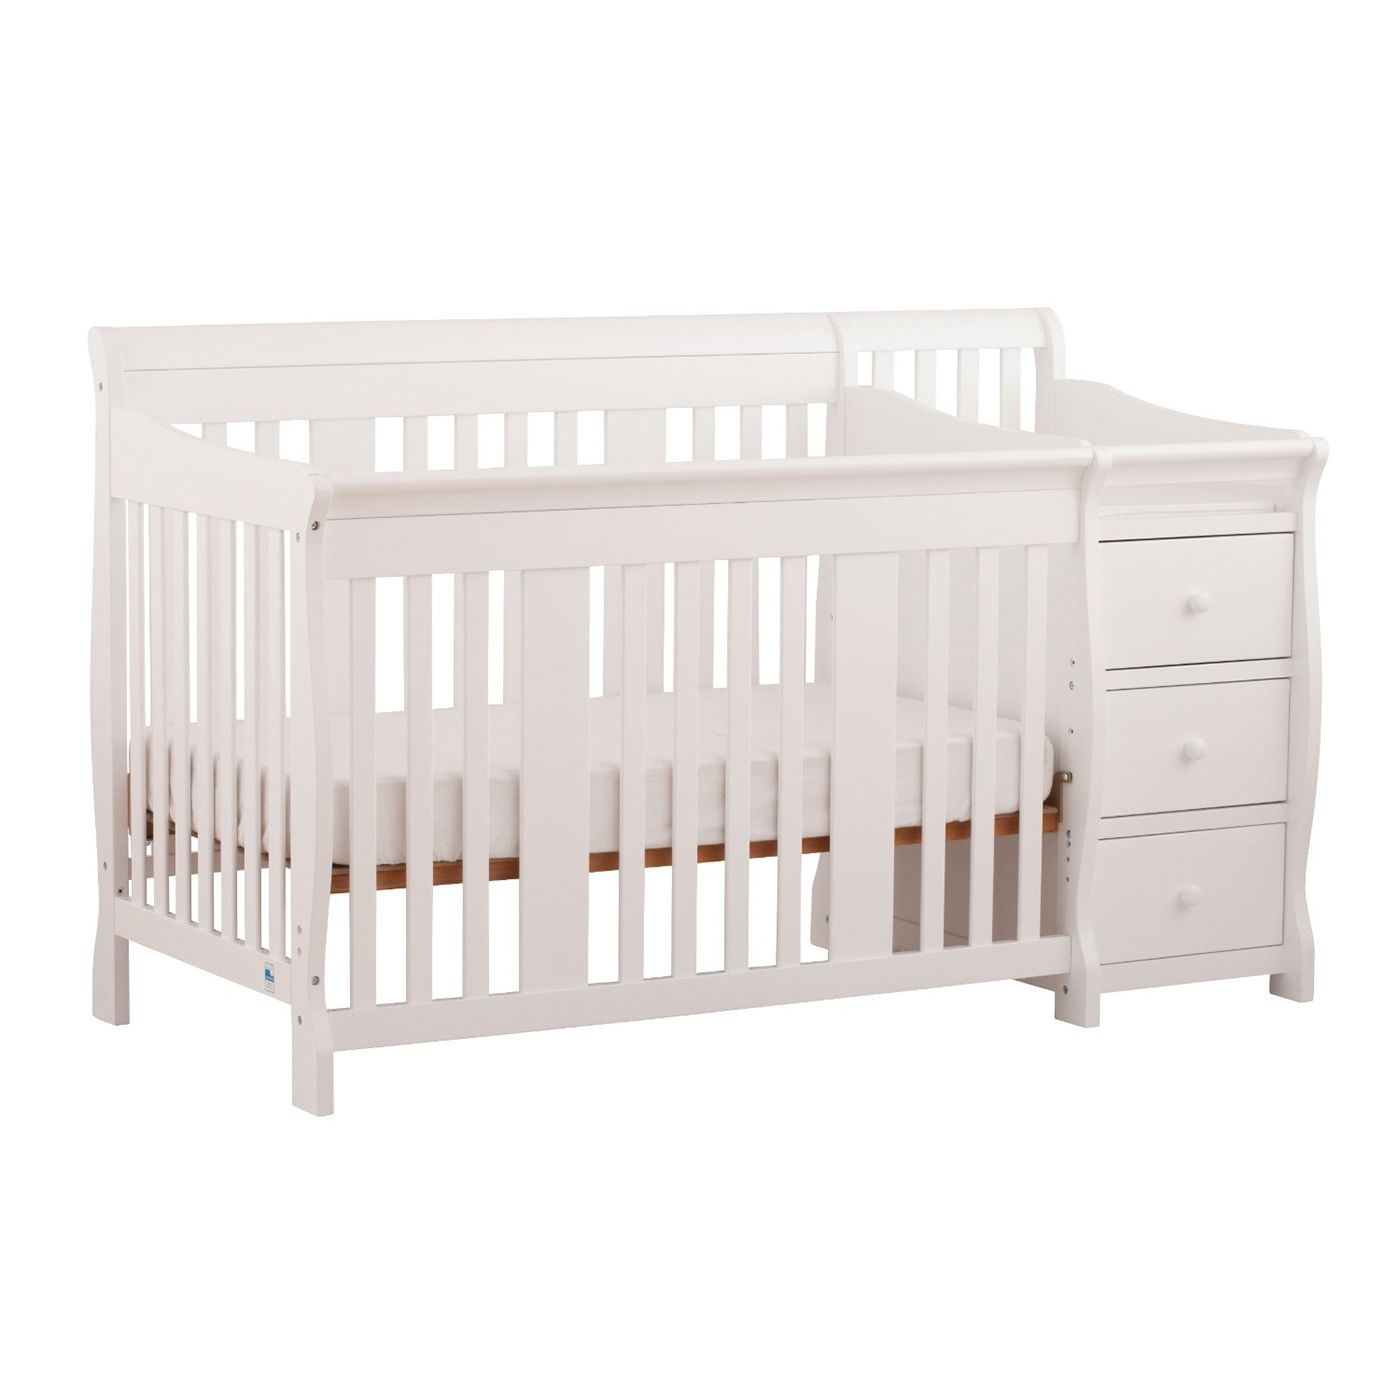 Storkcraft Portofino 4 In 1 Fixed Side Convertible Crib Changer In White Crib With Changing Table Convertible Crib Cribs [ 1400 x 1400 Pixel ]